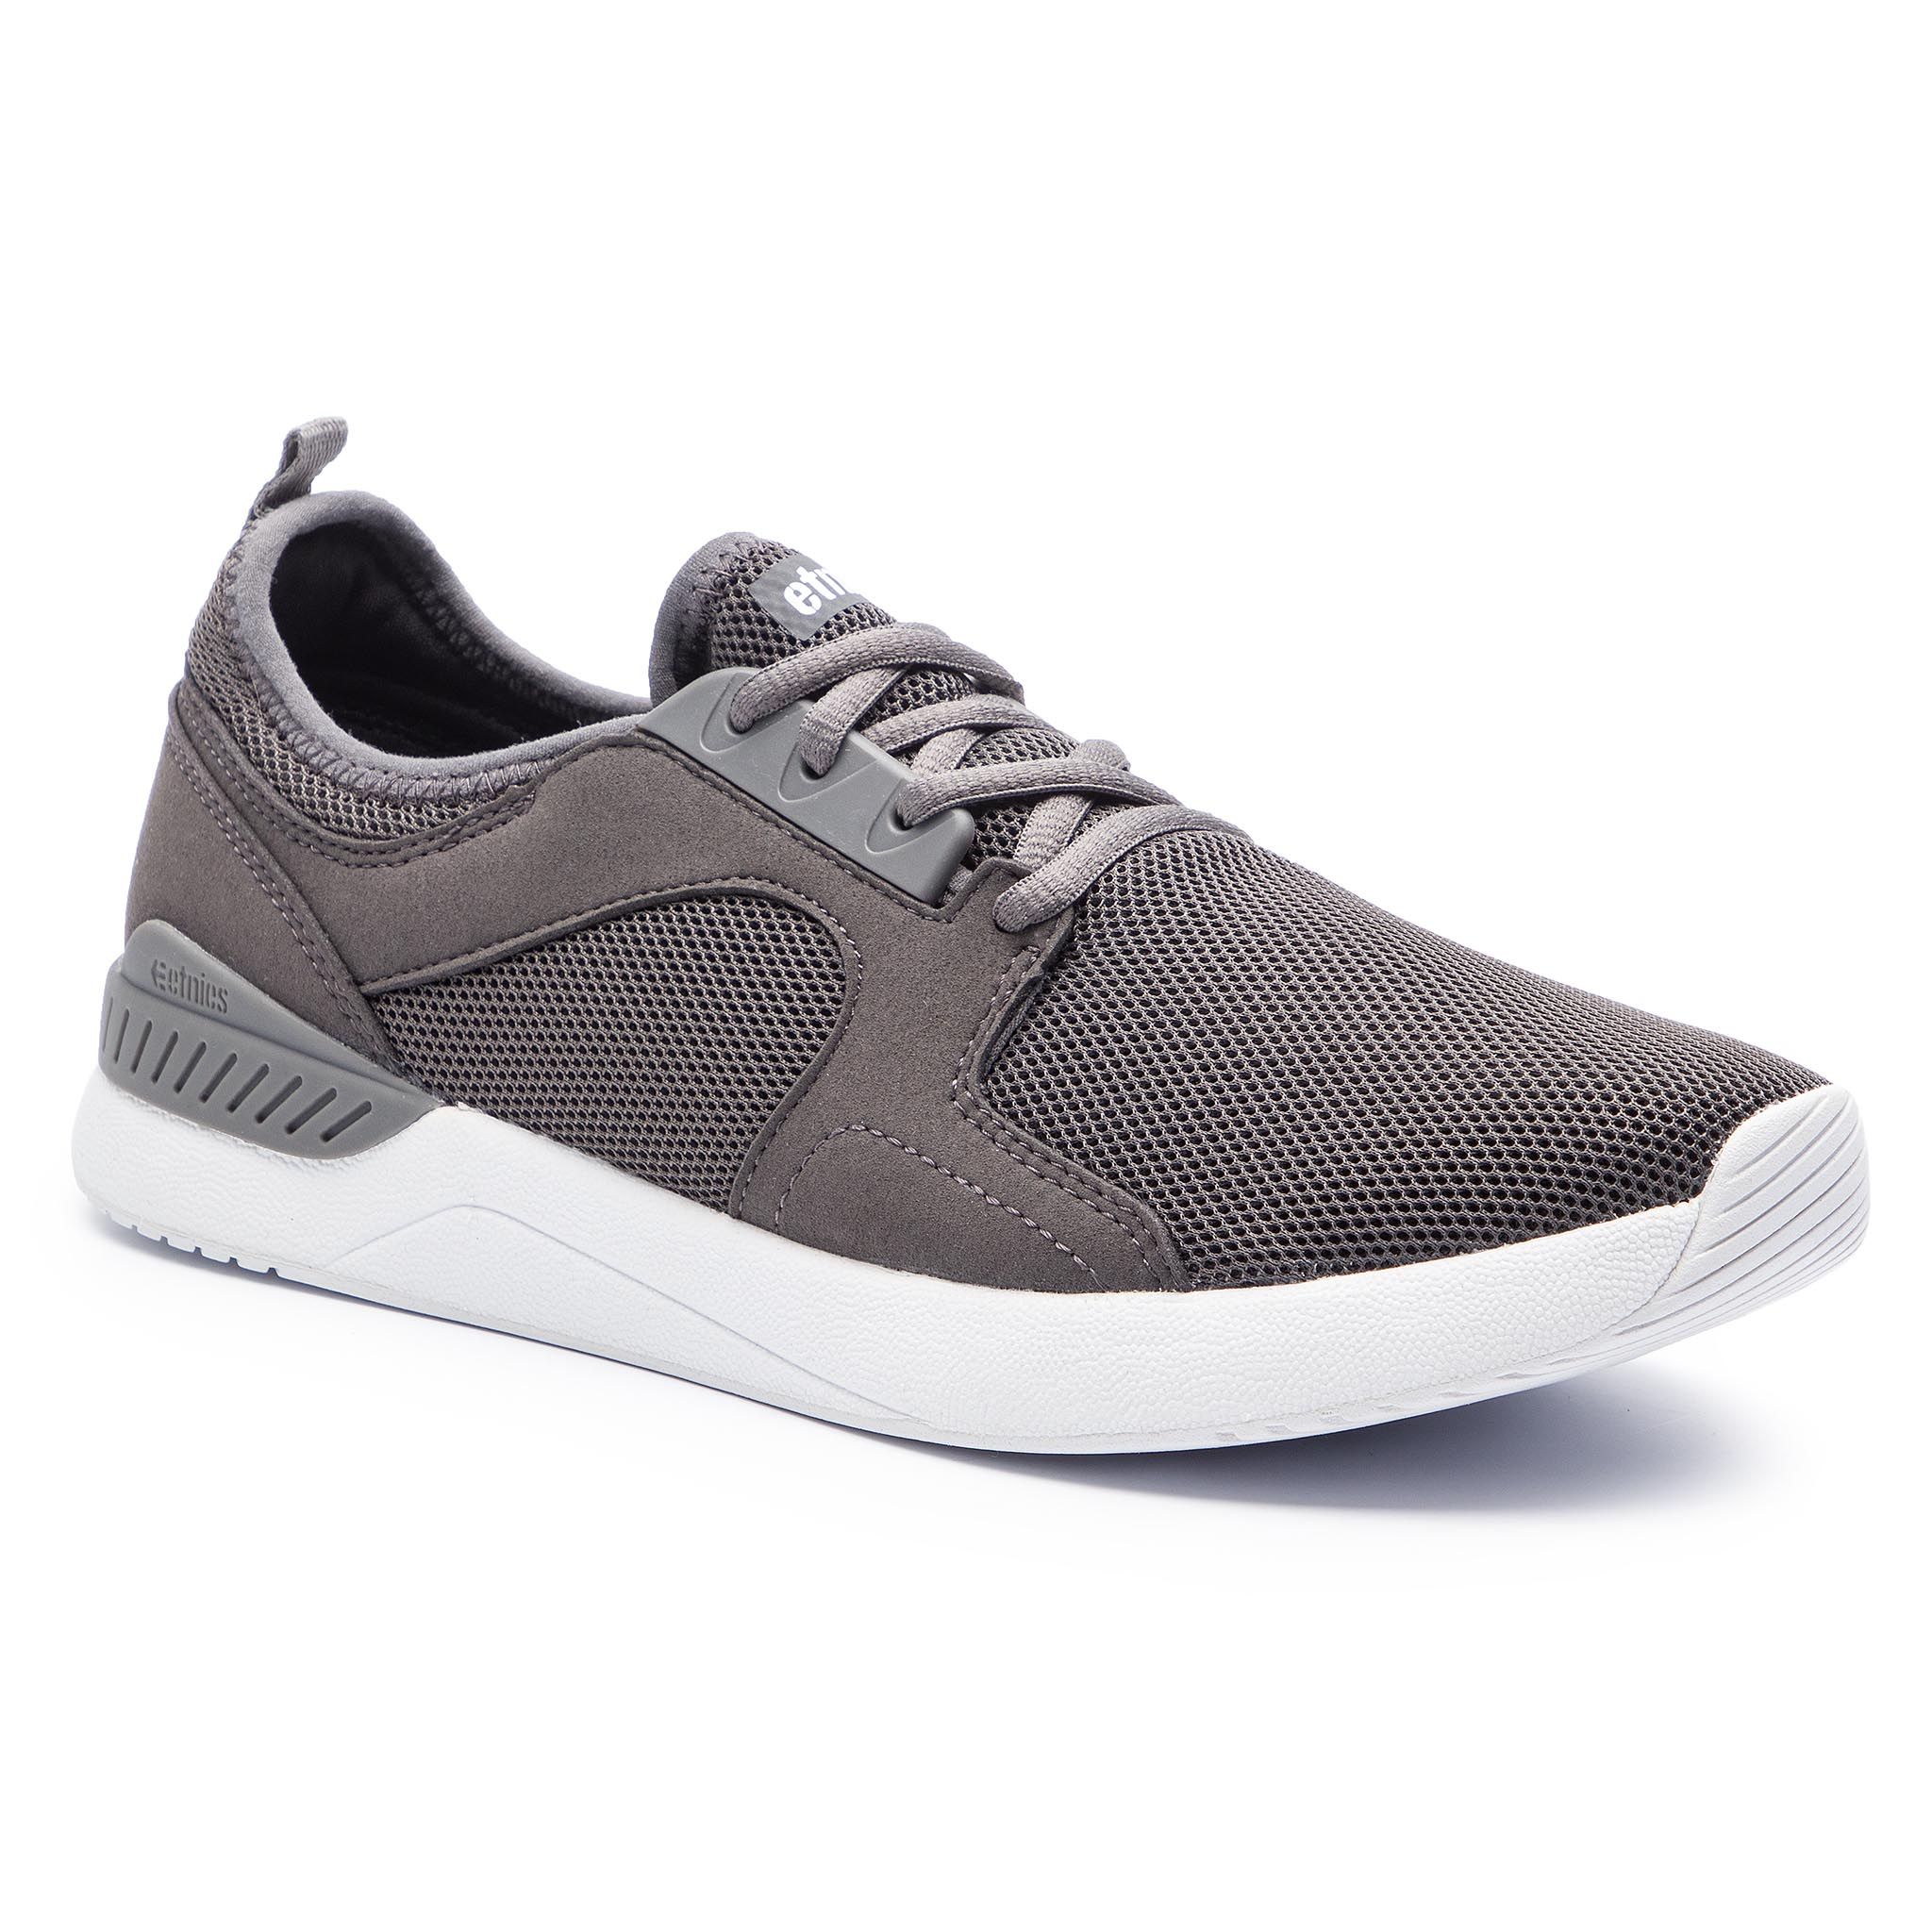 Sneakers ETNIES - Cyprus Sc 4101000475 Grey/White 370